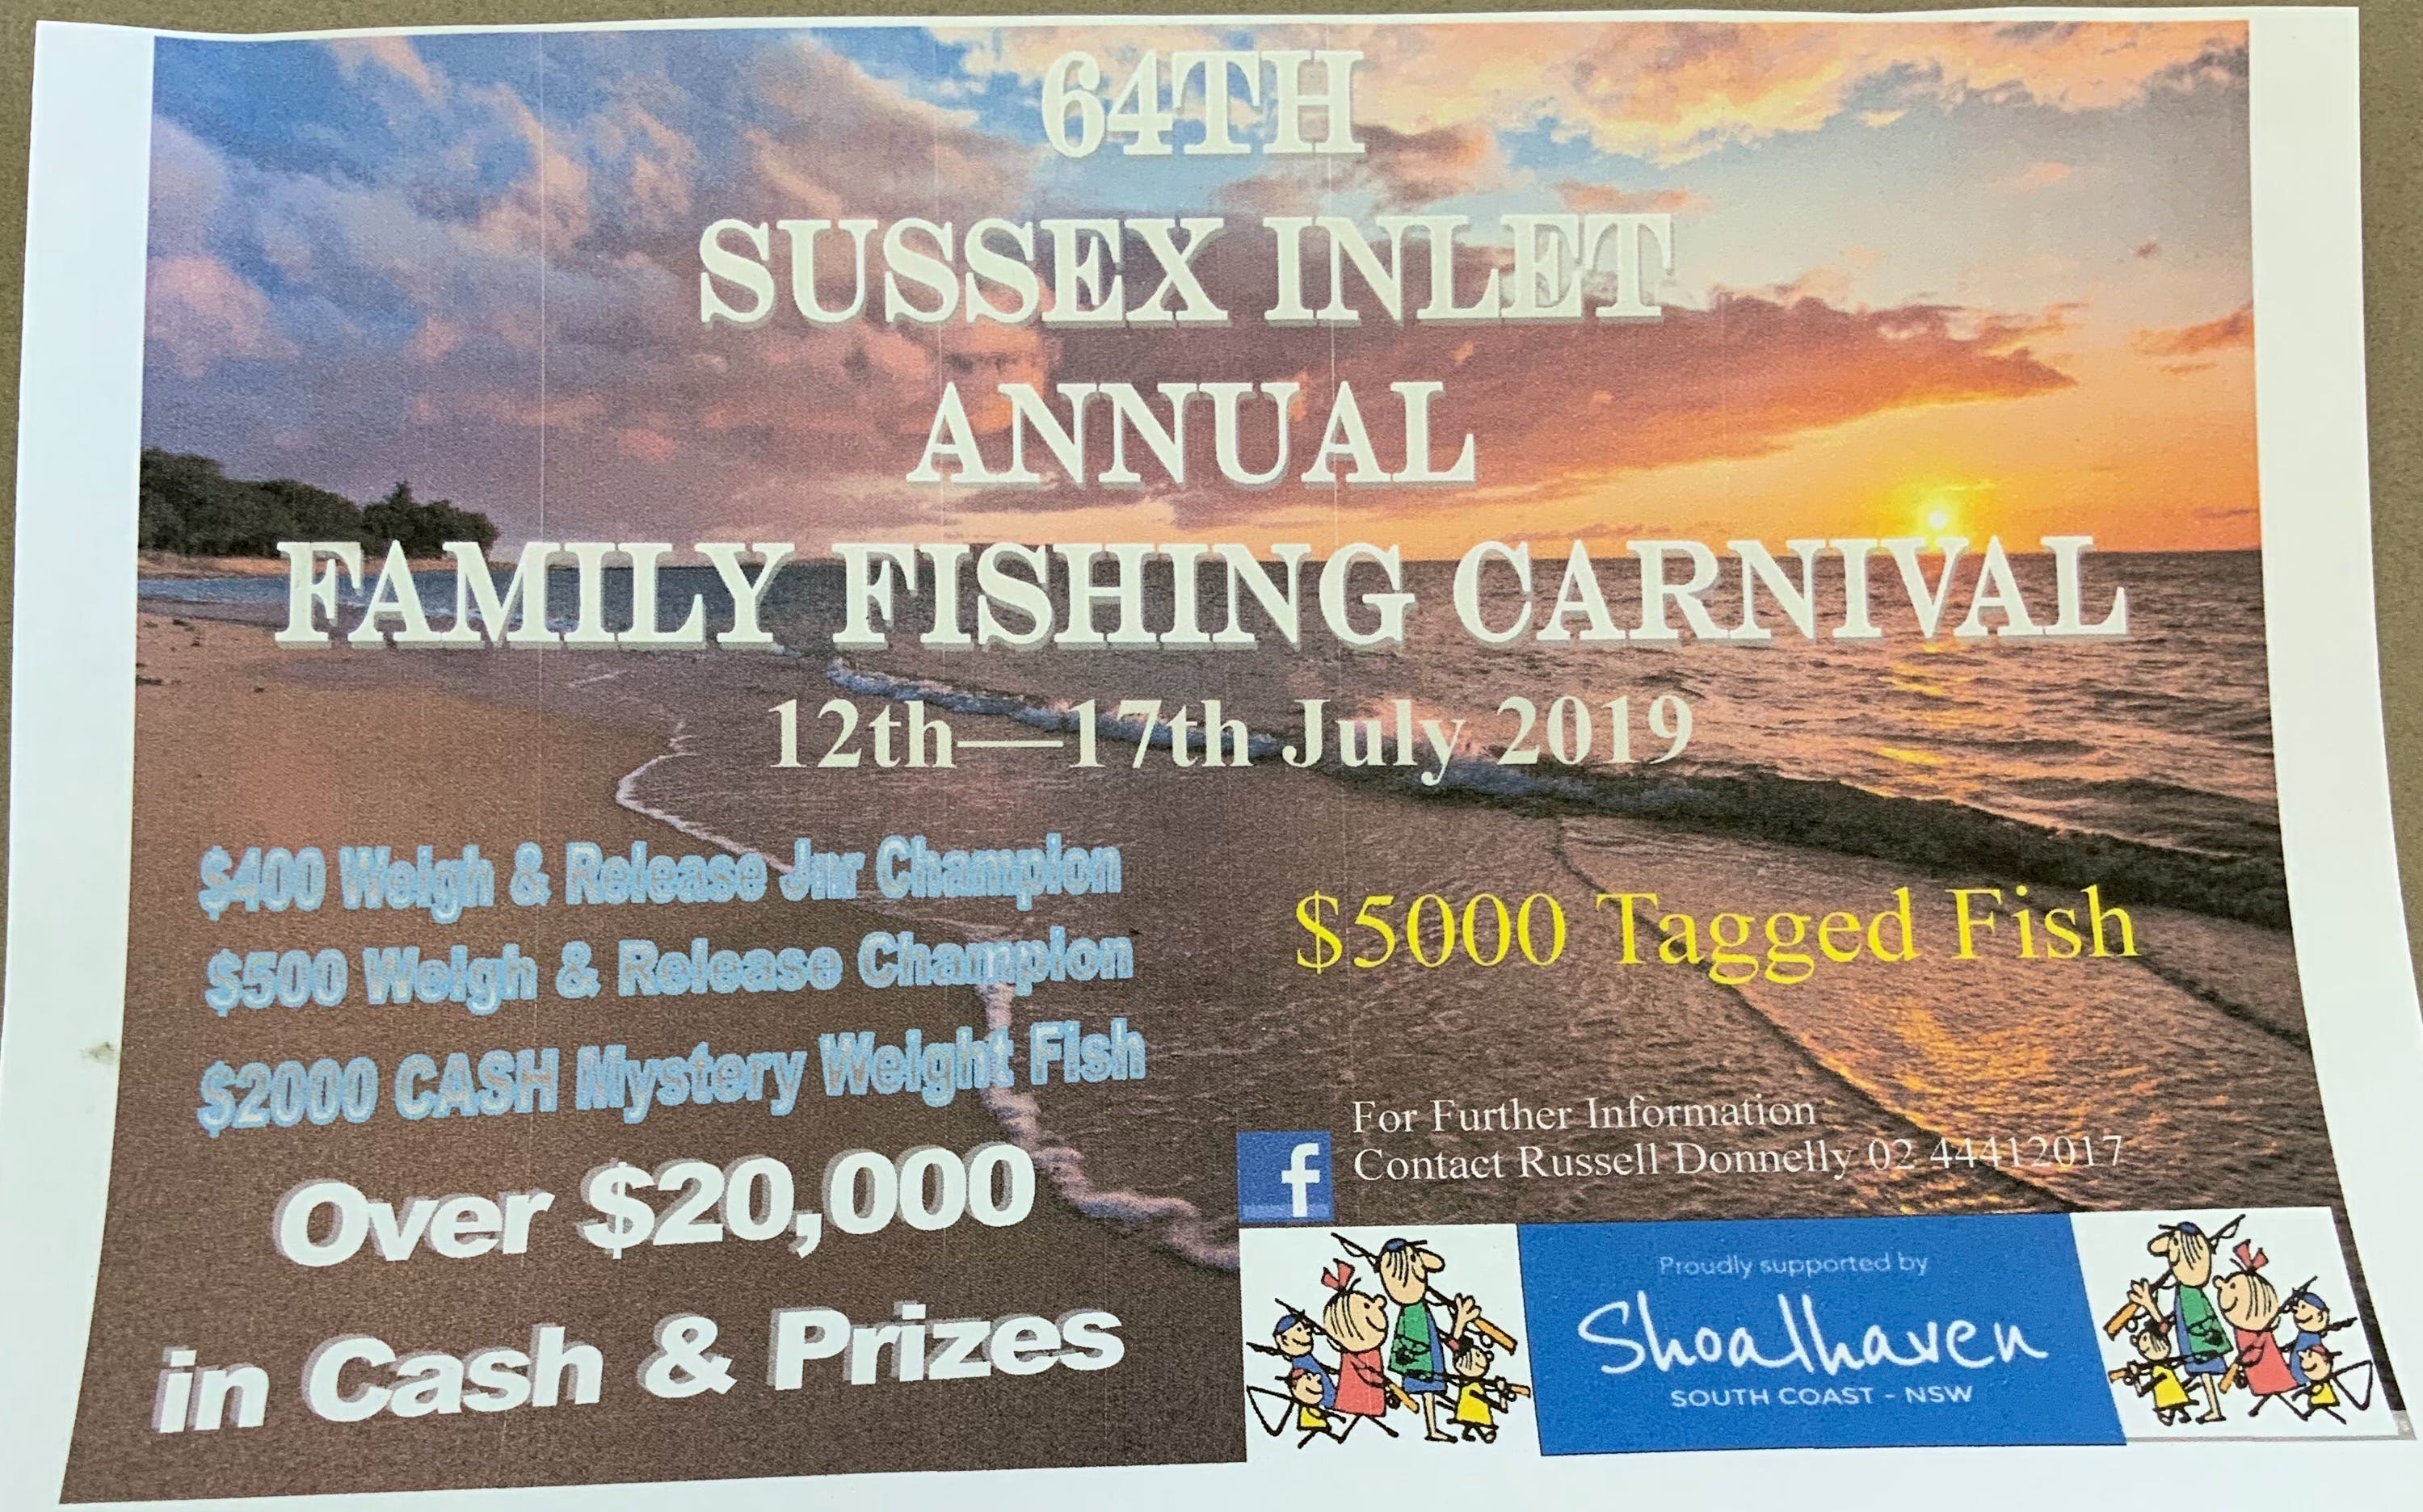 The Sussex Inlet Annual Family Fishing Carnival - WA Accommodation